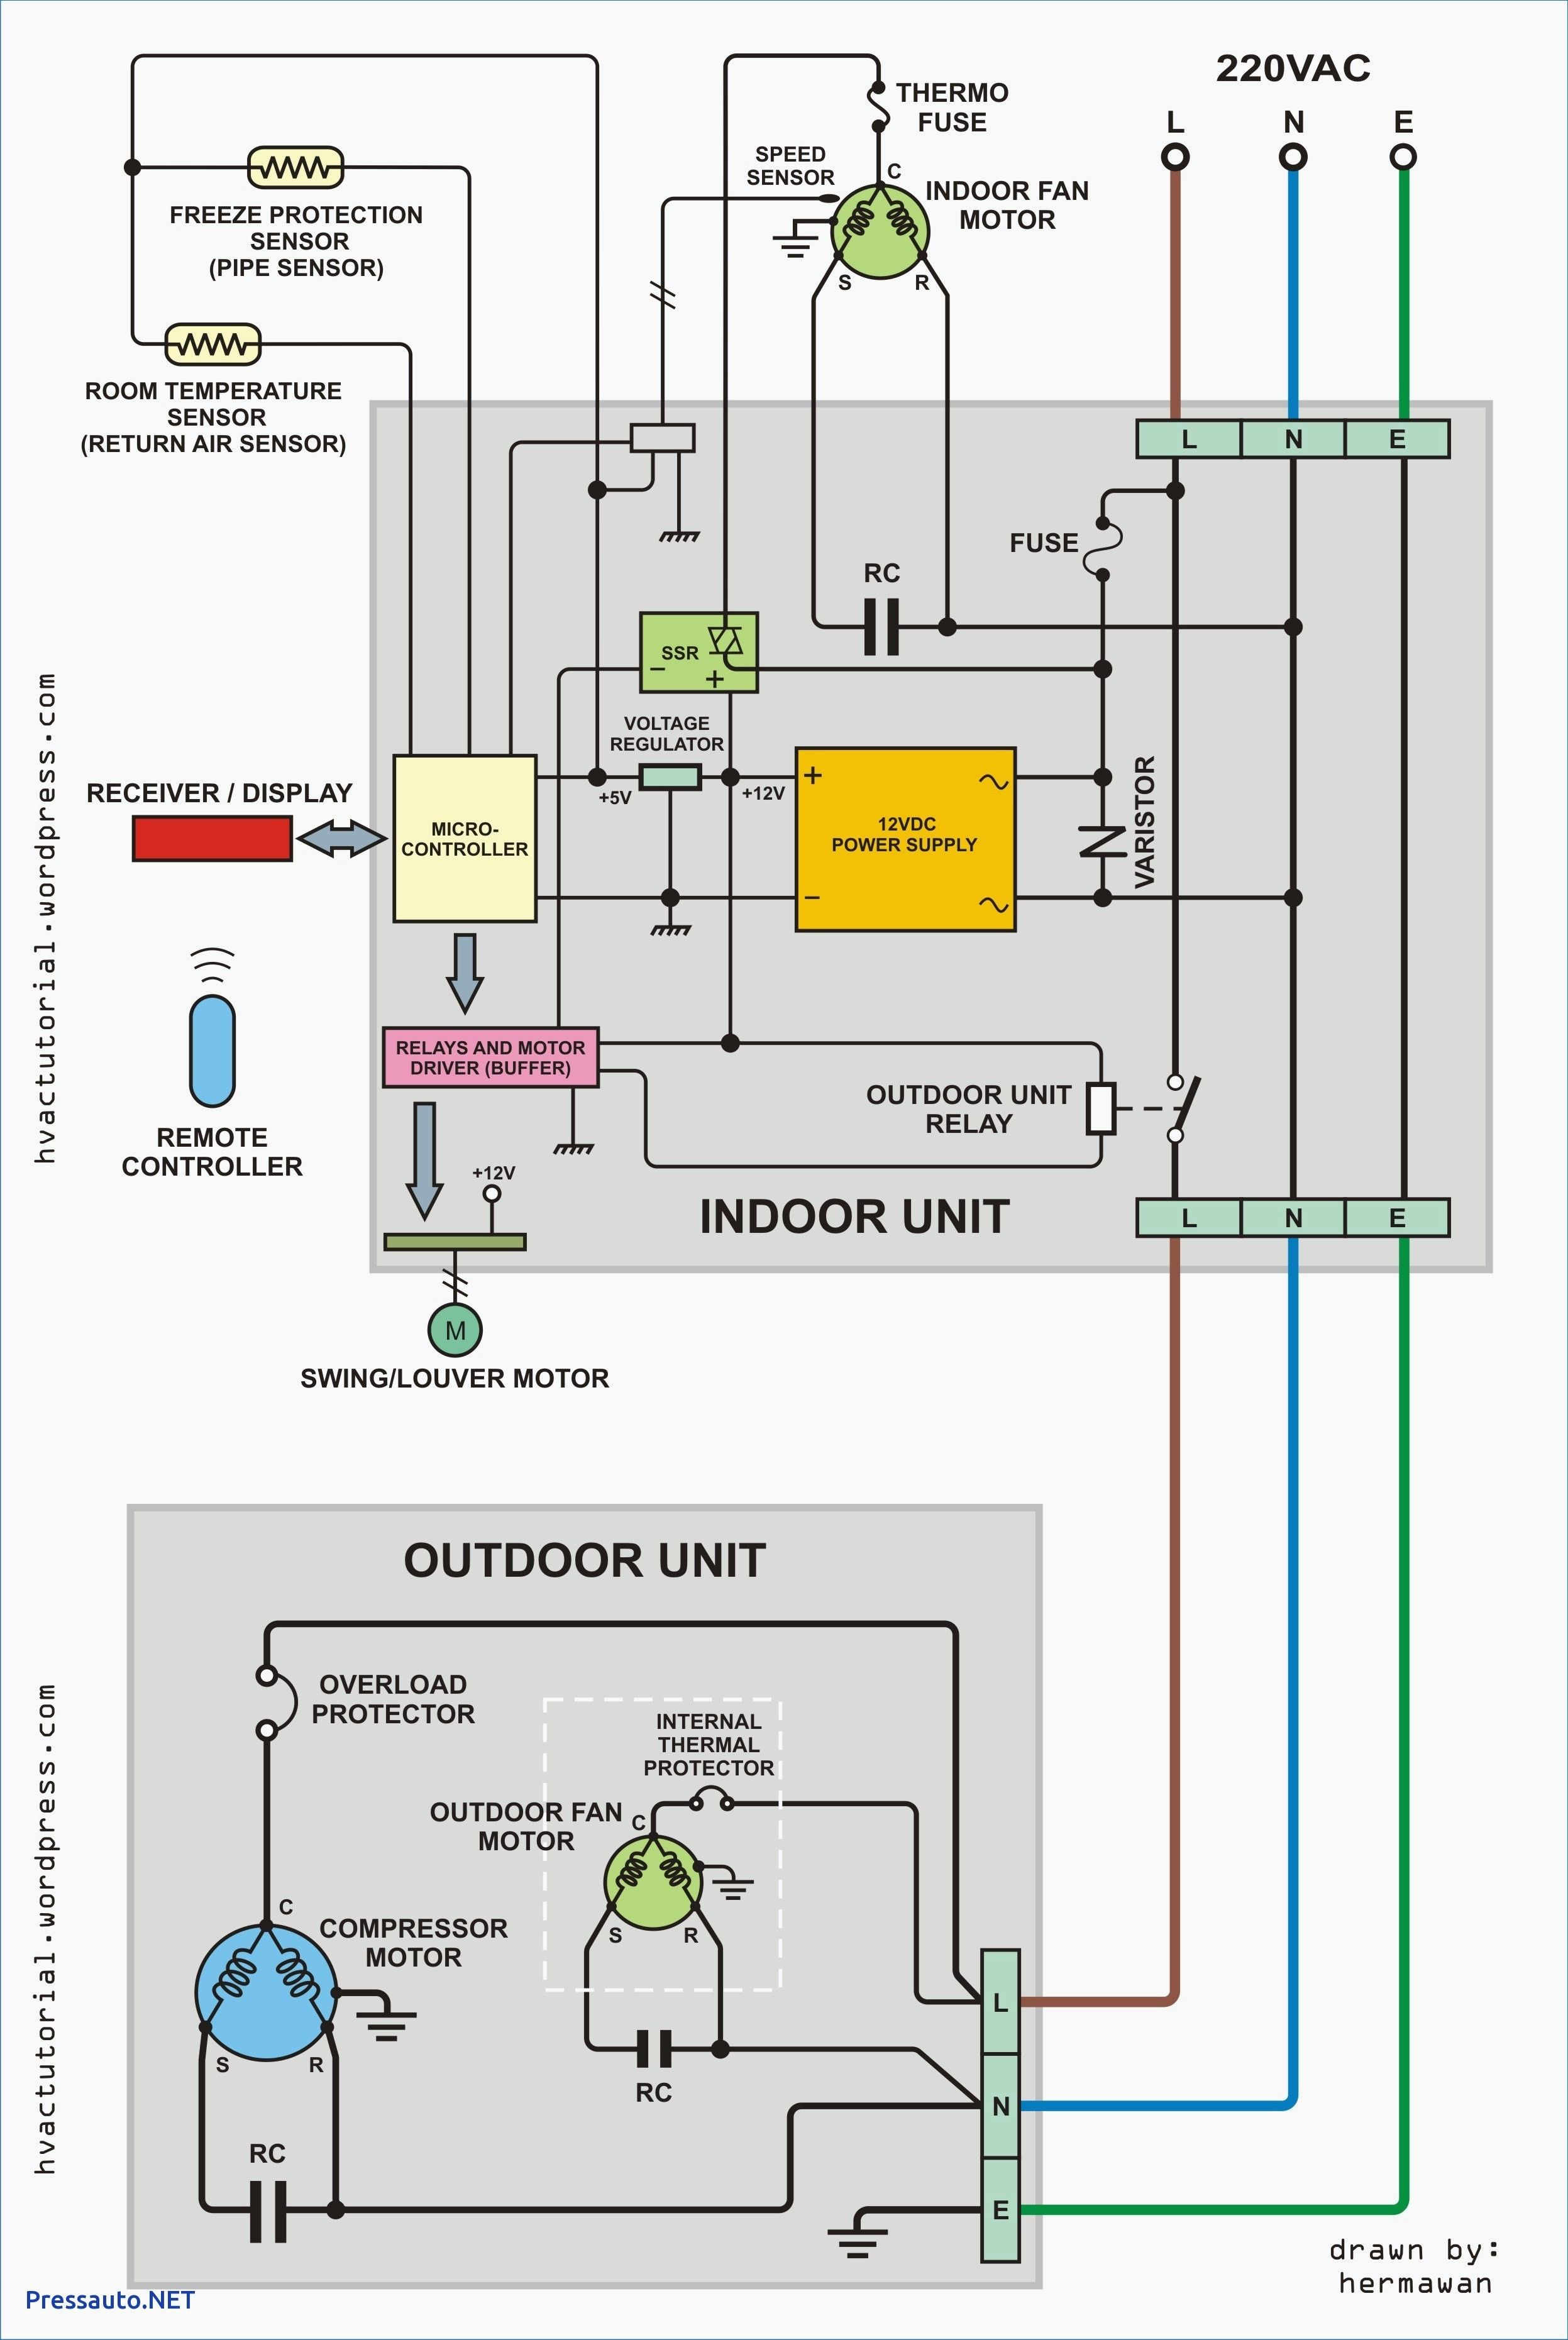 Awesome Trane Xe1000 Wiring Diagram In 2020 Refrigeration And Air Conditioning Ac Wiring Electrical Wiring Diagram